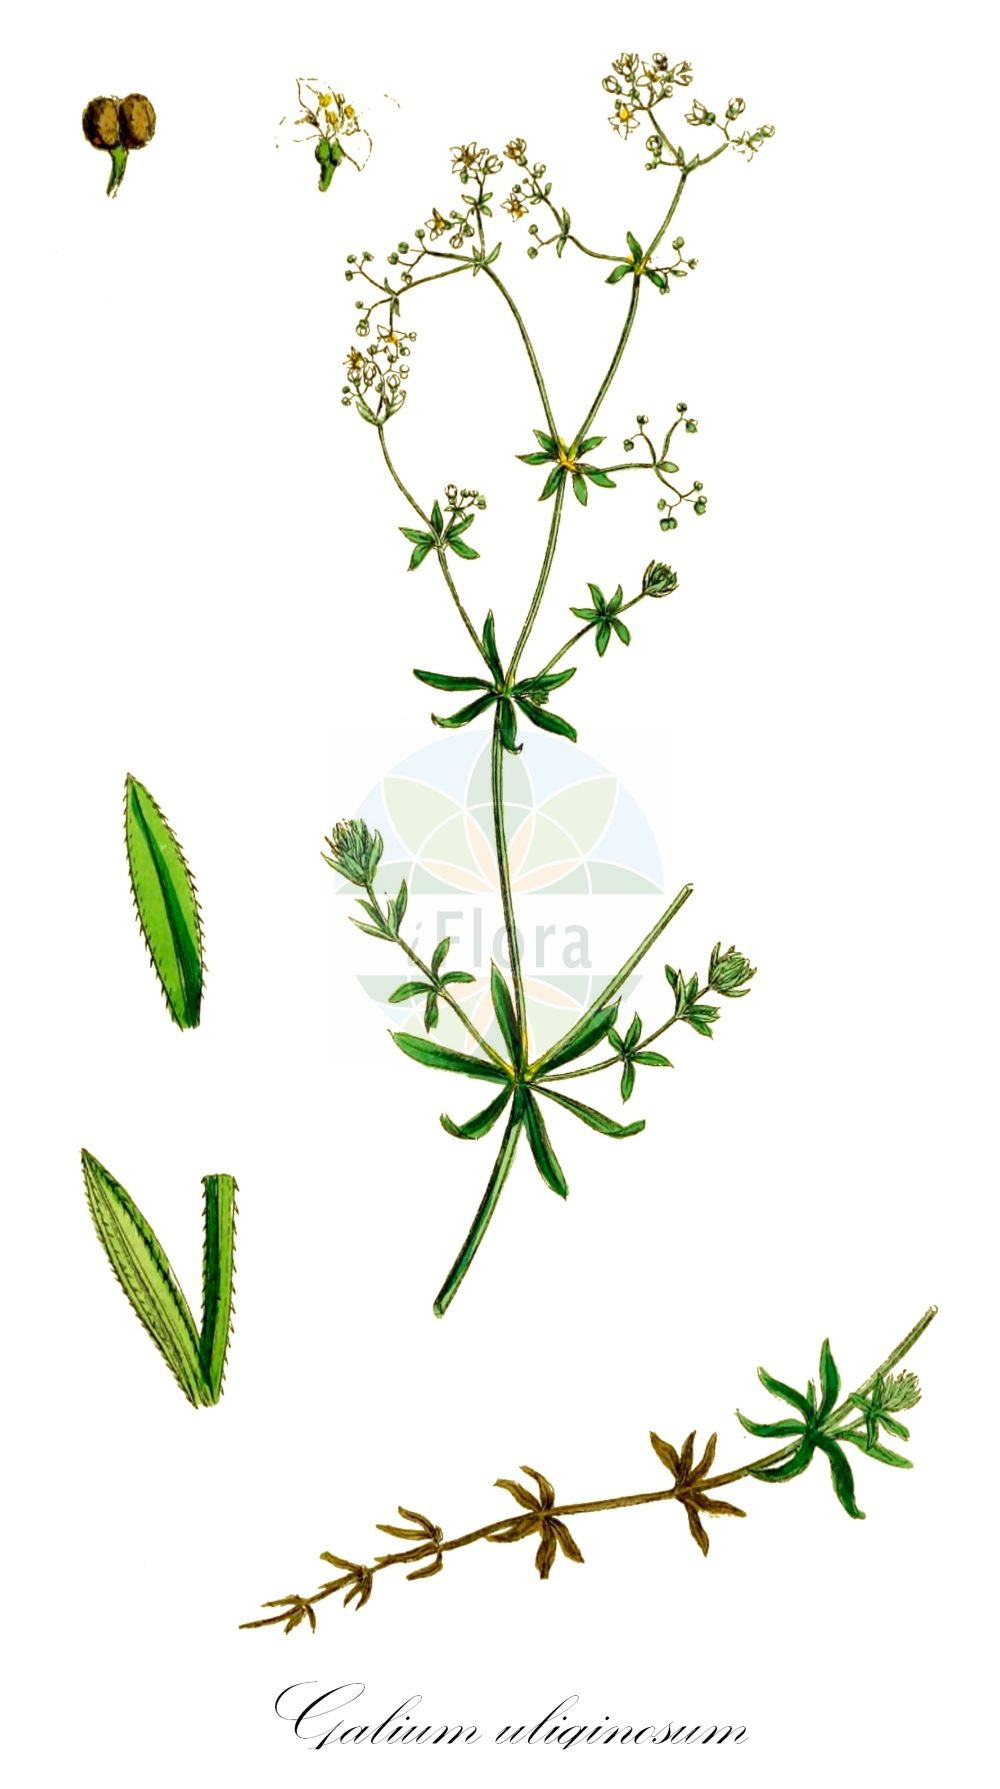 Historische Abbildung von Galium uliginosum (Moor-Labkraut - Fen Bedstraw). Das Bild zeigt Blatt, Bluete, Frucht und Same. ---- Historical Drawing of Galium uliginosum (Moor-Labkraut - Fen Bedstraw).The image is showing leaf, flower, fruit and seed.(Galium uliginosum,Moor-Labkraut,Fen Bedstraw,L. subsp.,Galium,Labkraut,Bedstraw,Rubiaceae,Roetegewaechse;Kaffeegewaechse;Krappgewaechse;Labkrautgewaechse,Bedstraw family,Blatt,Bluete,Frucht,Same,leaf,flower,fruit,seed,Sowerby (1790-1813))